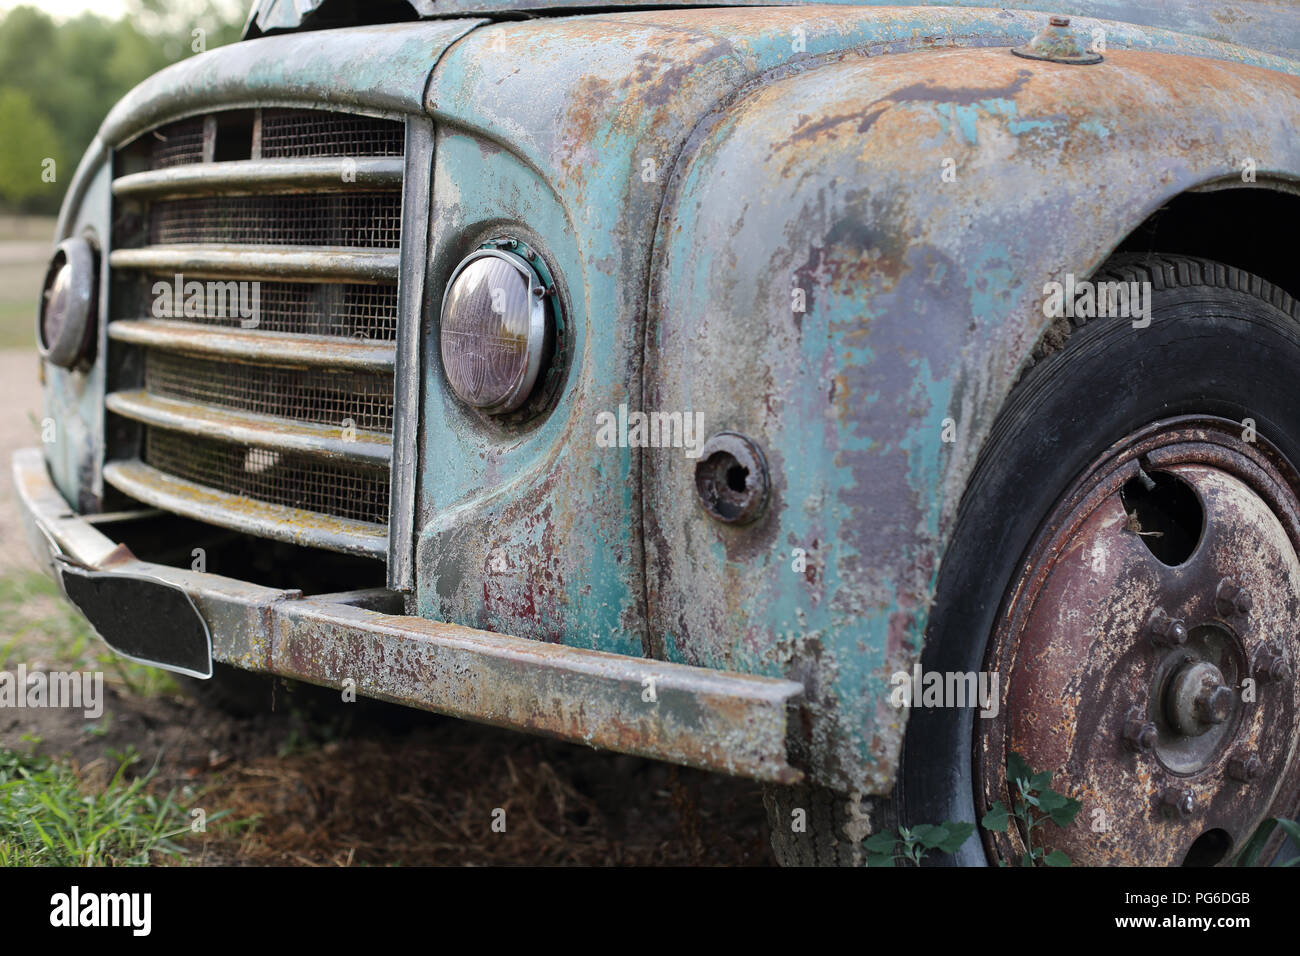 A Old rusted vintage classic car wreck - Stock Image